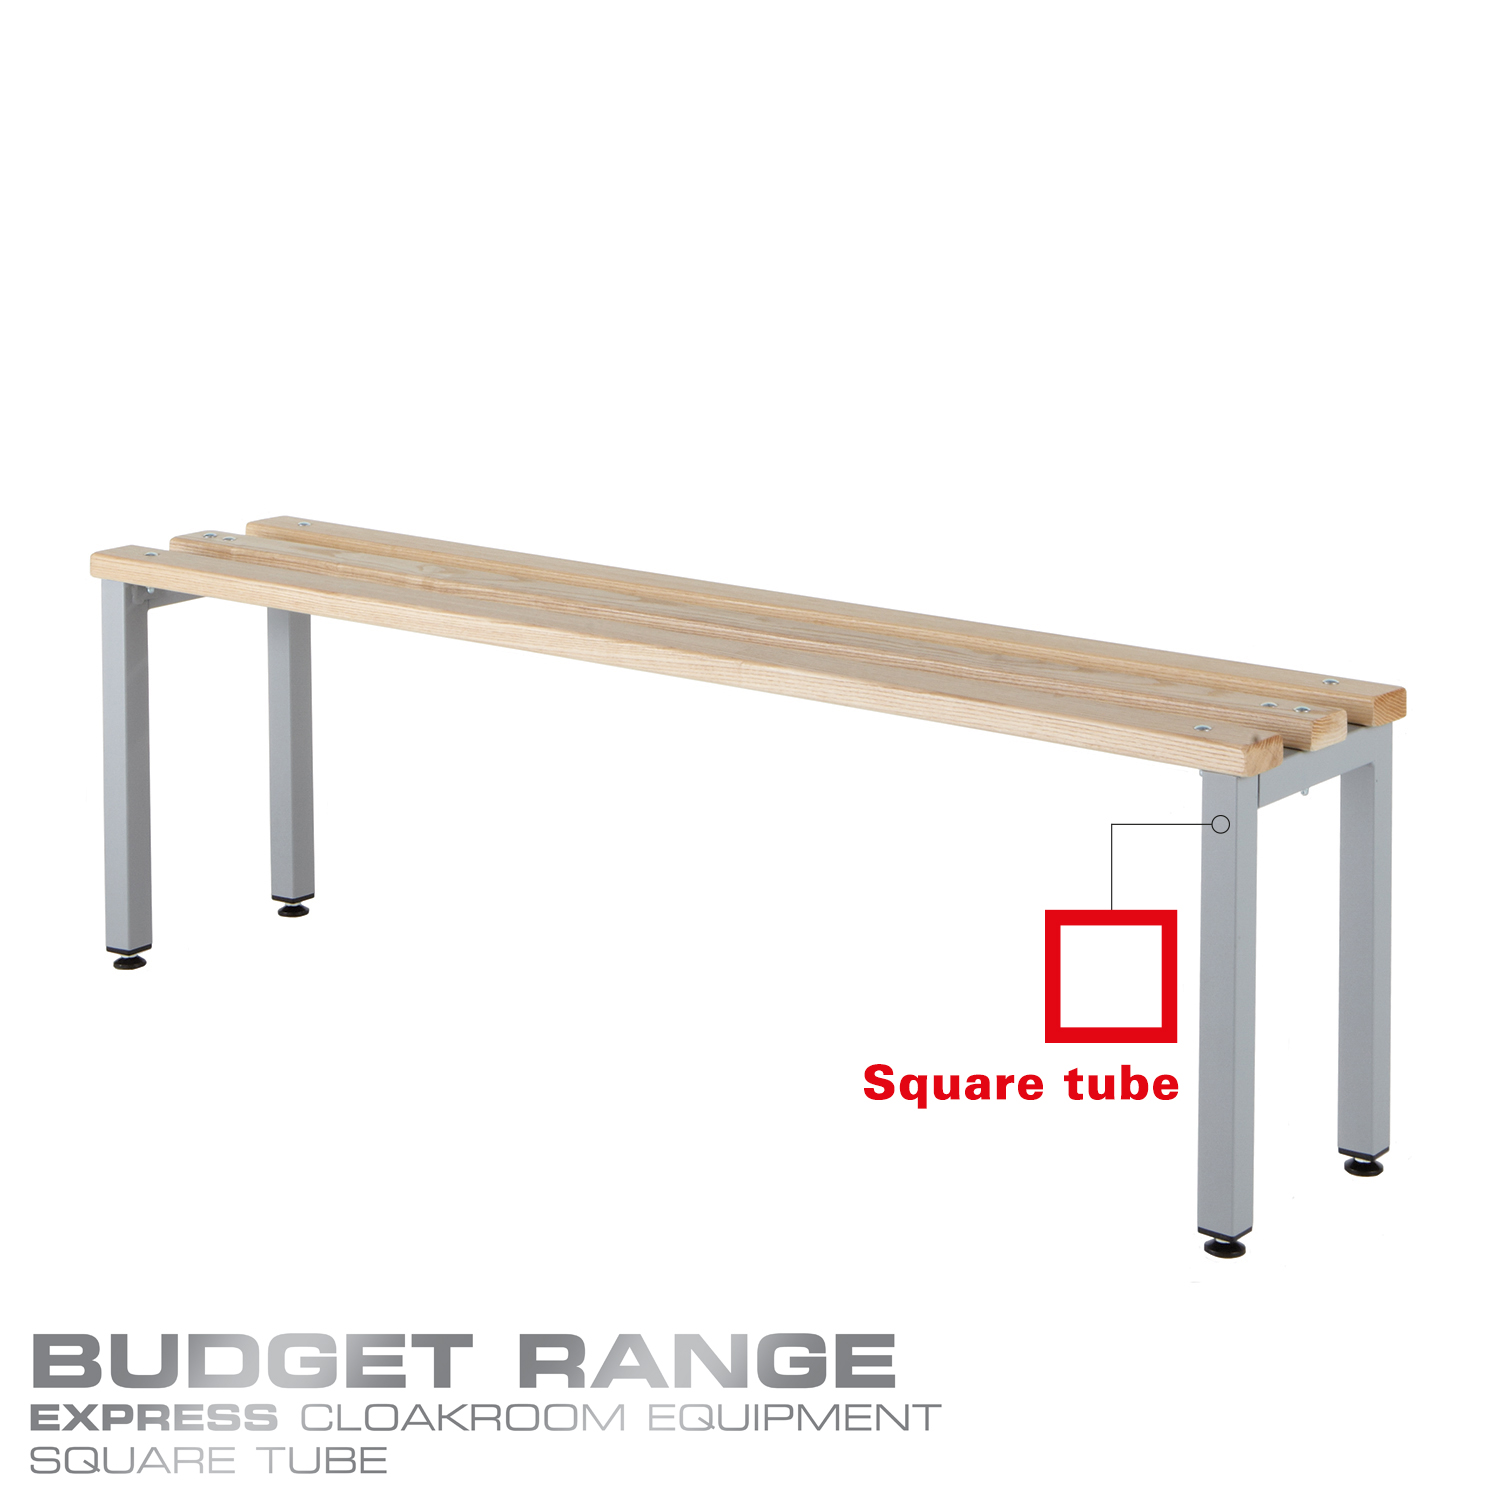 Probe cloakroom wood bench in your budget range